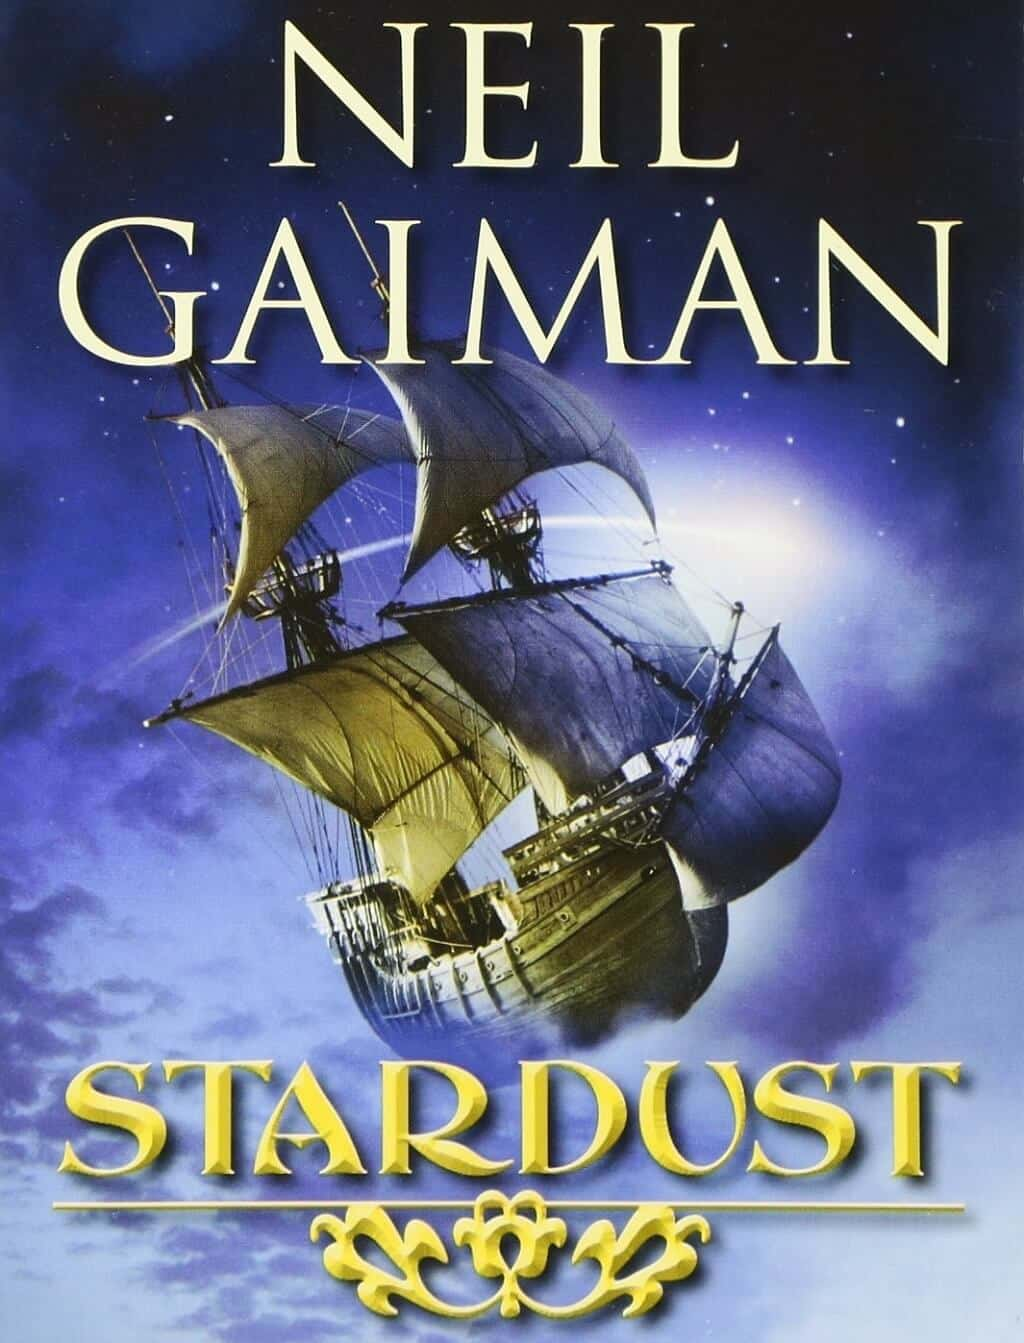 Stardust Audiobook free download by Neil Gaiman